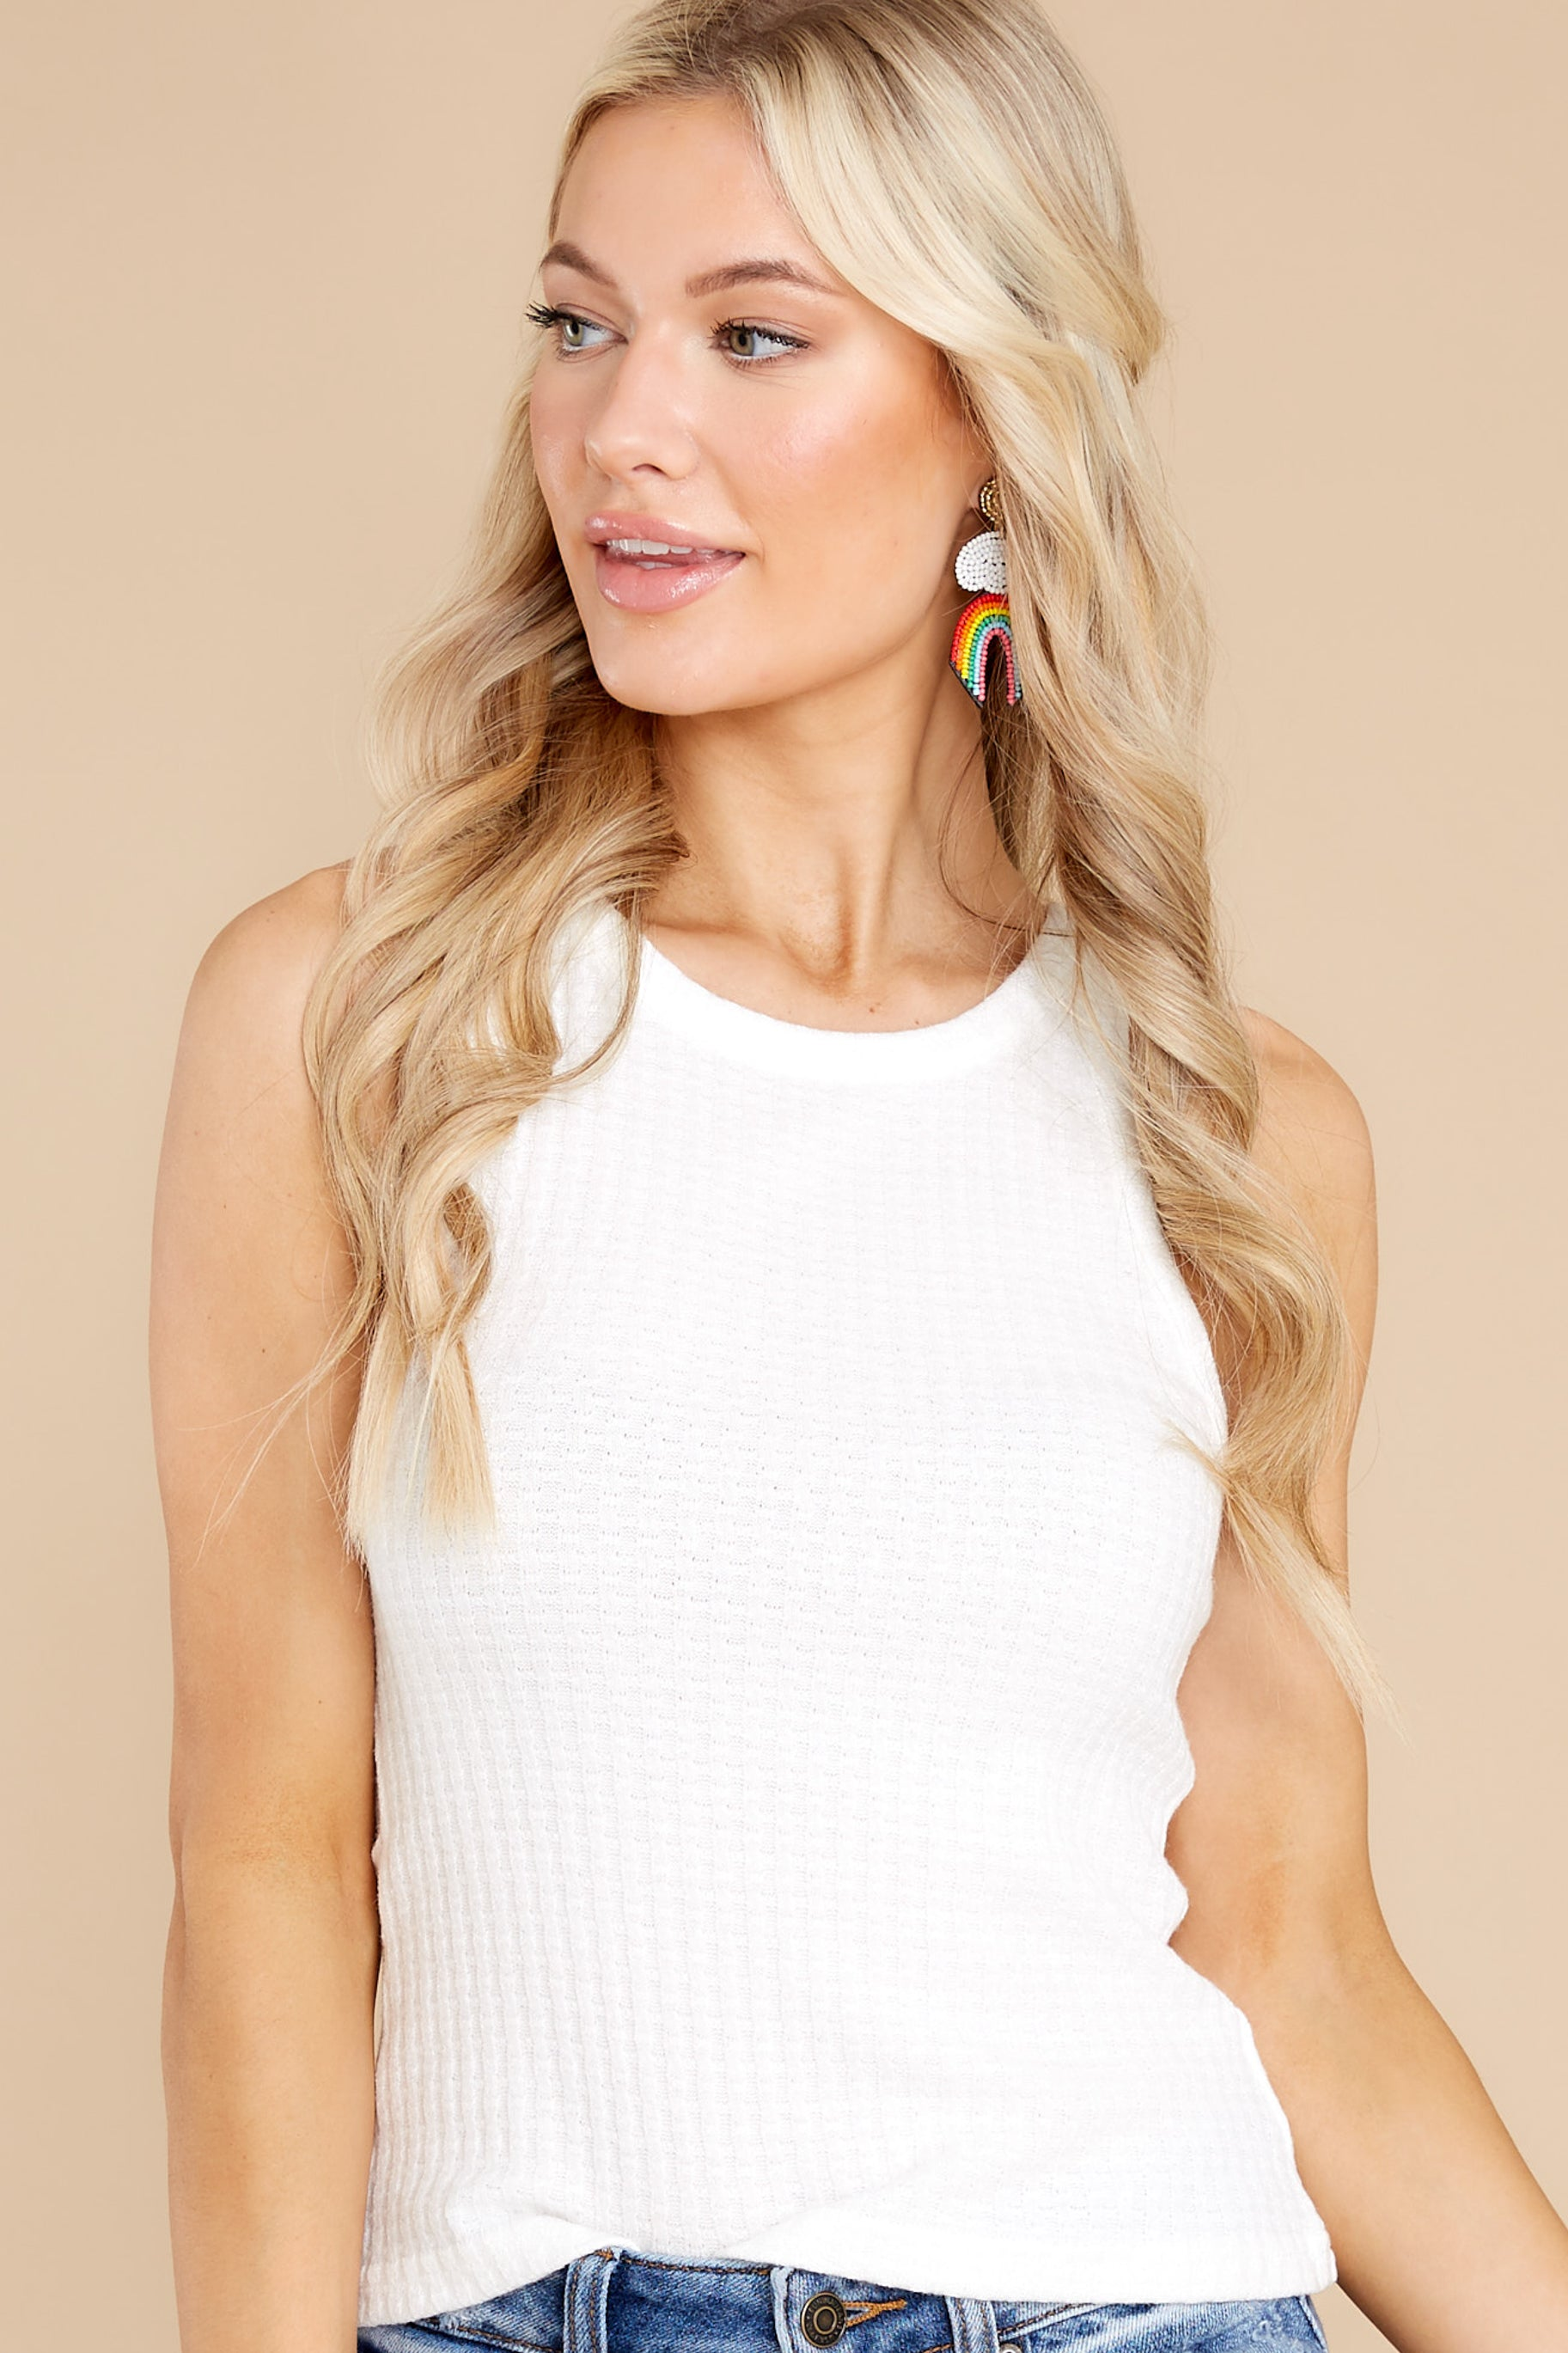 6 Here With You White Tank Top at reddress.com